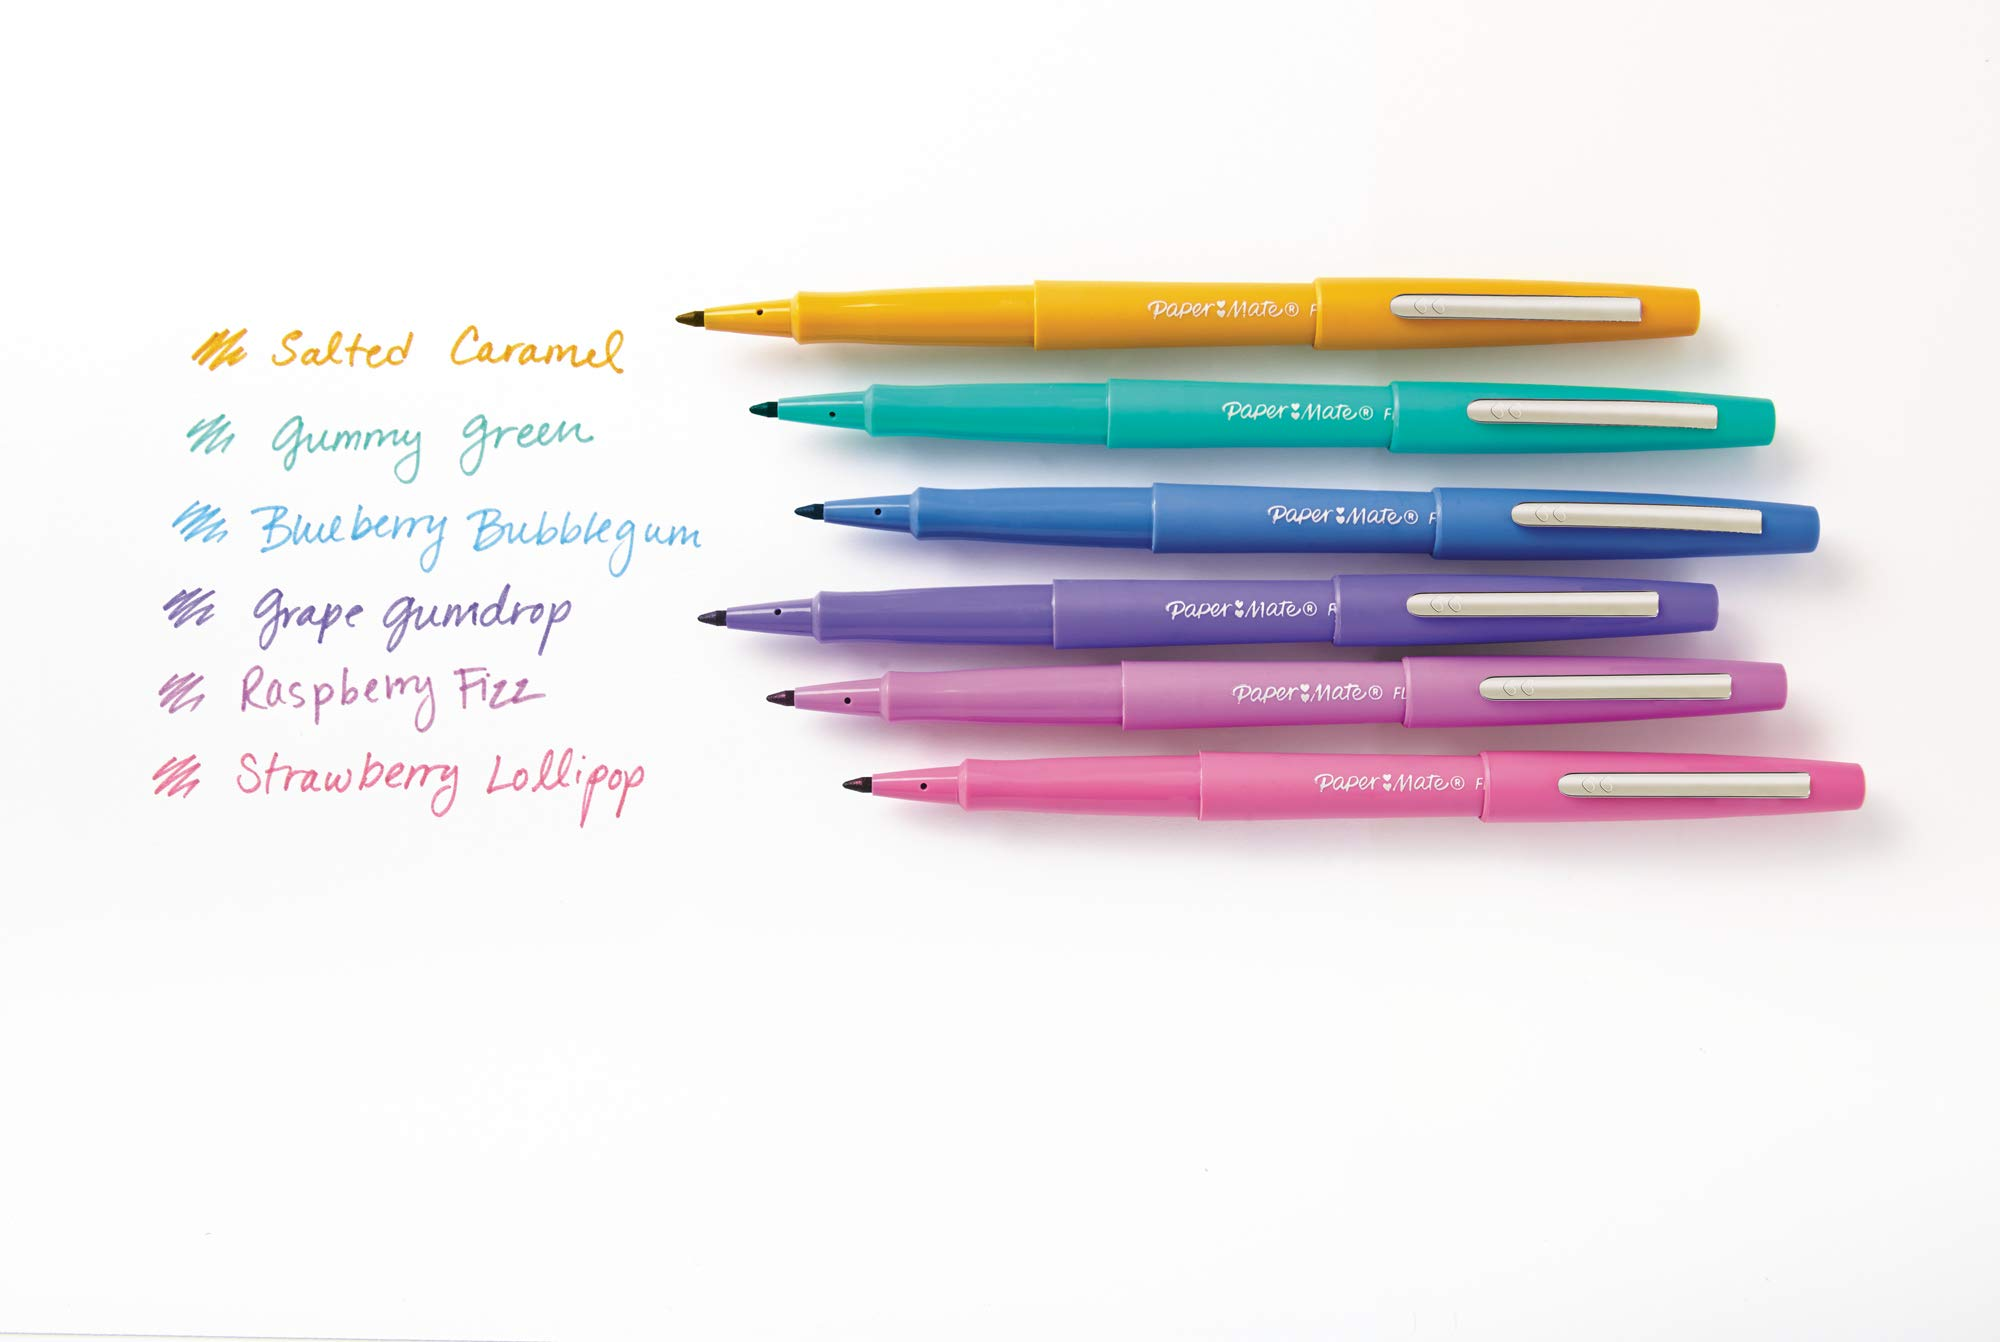 Paper Mate Flair Felt Tip Pens, Medium Point (0.7mm), Limited Edition Candy Pop Pack, 24 Count by Paper Mate (Image #5)